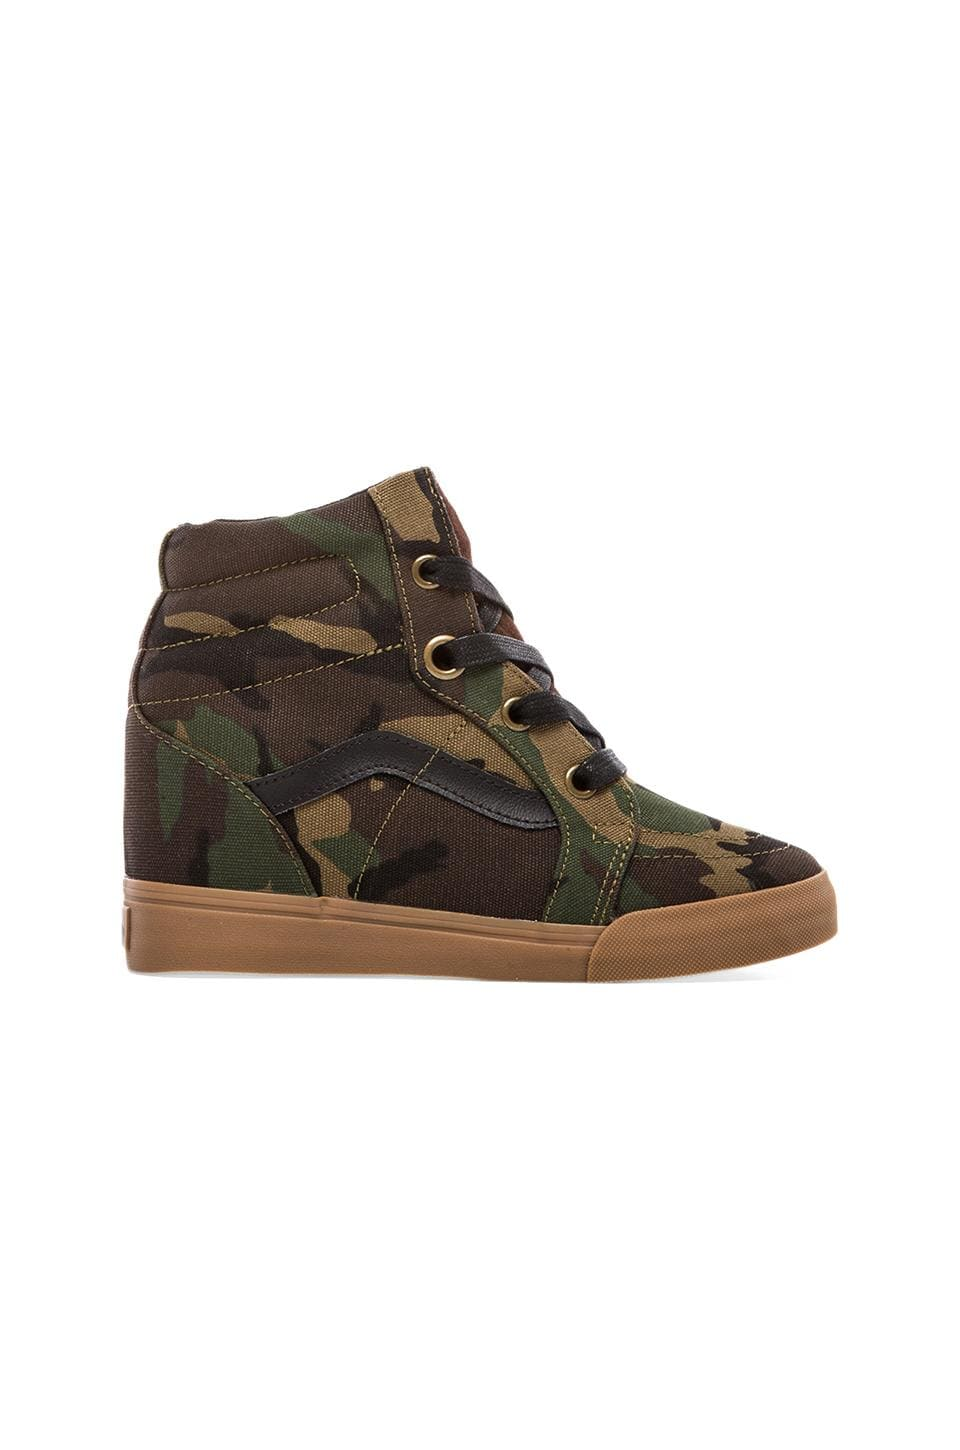 Vans Sk8-Hi Wedge Sneaker in Military Olive & Medium Gum